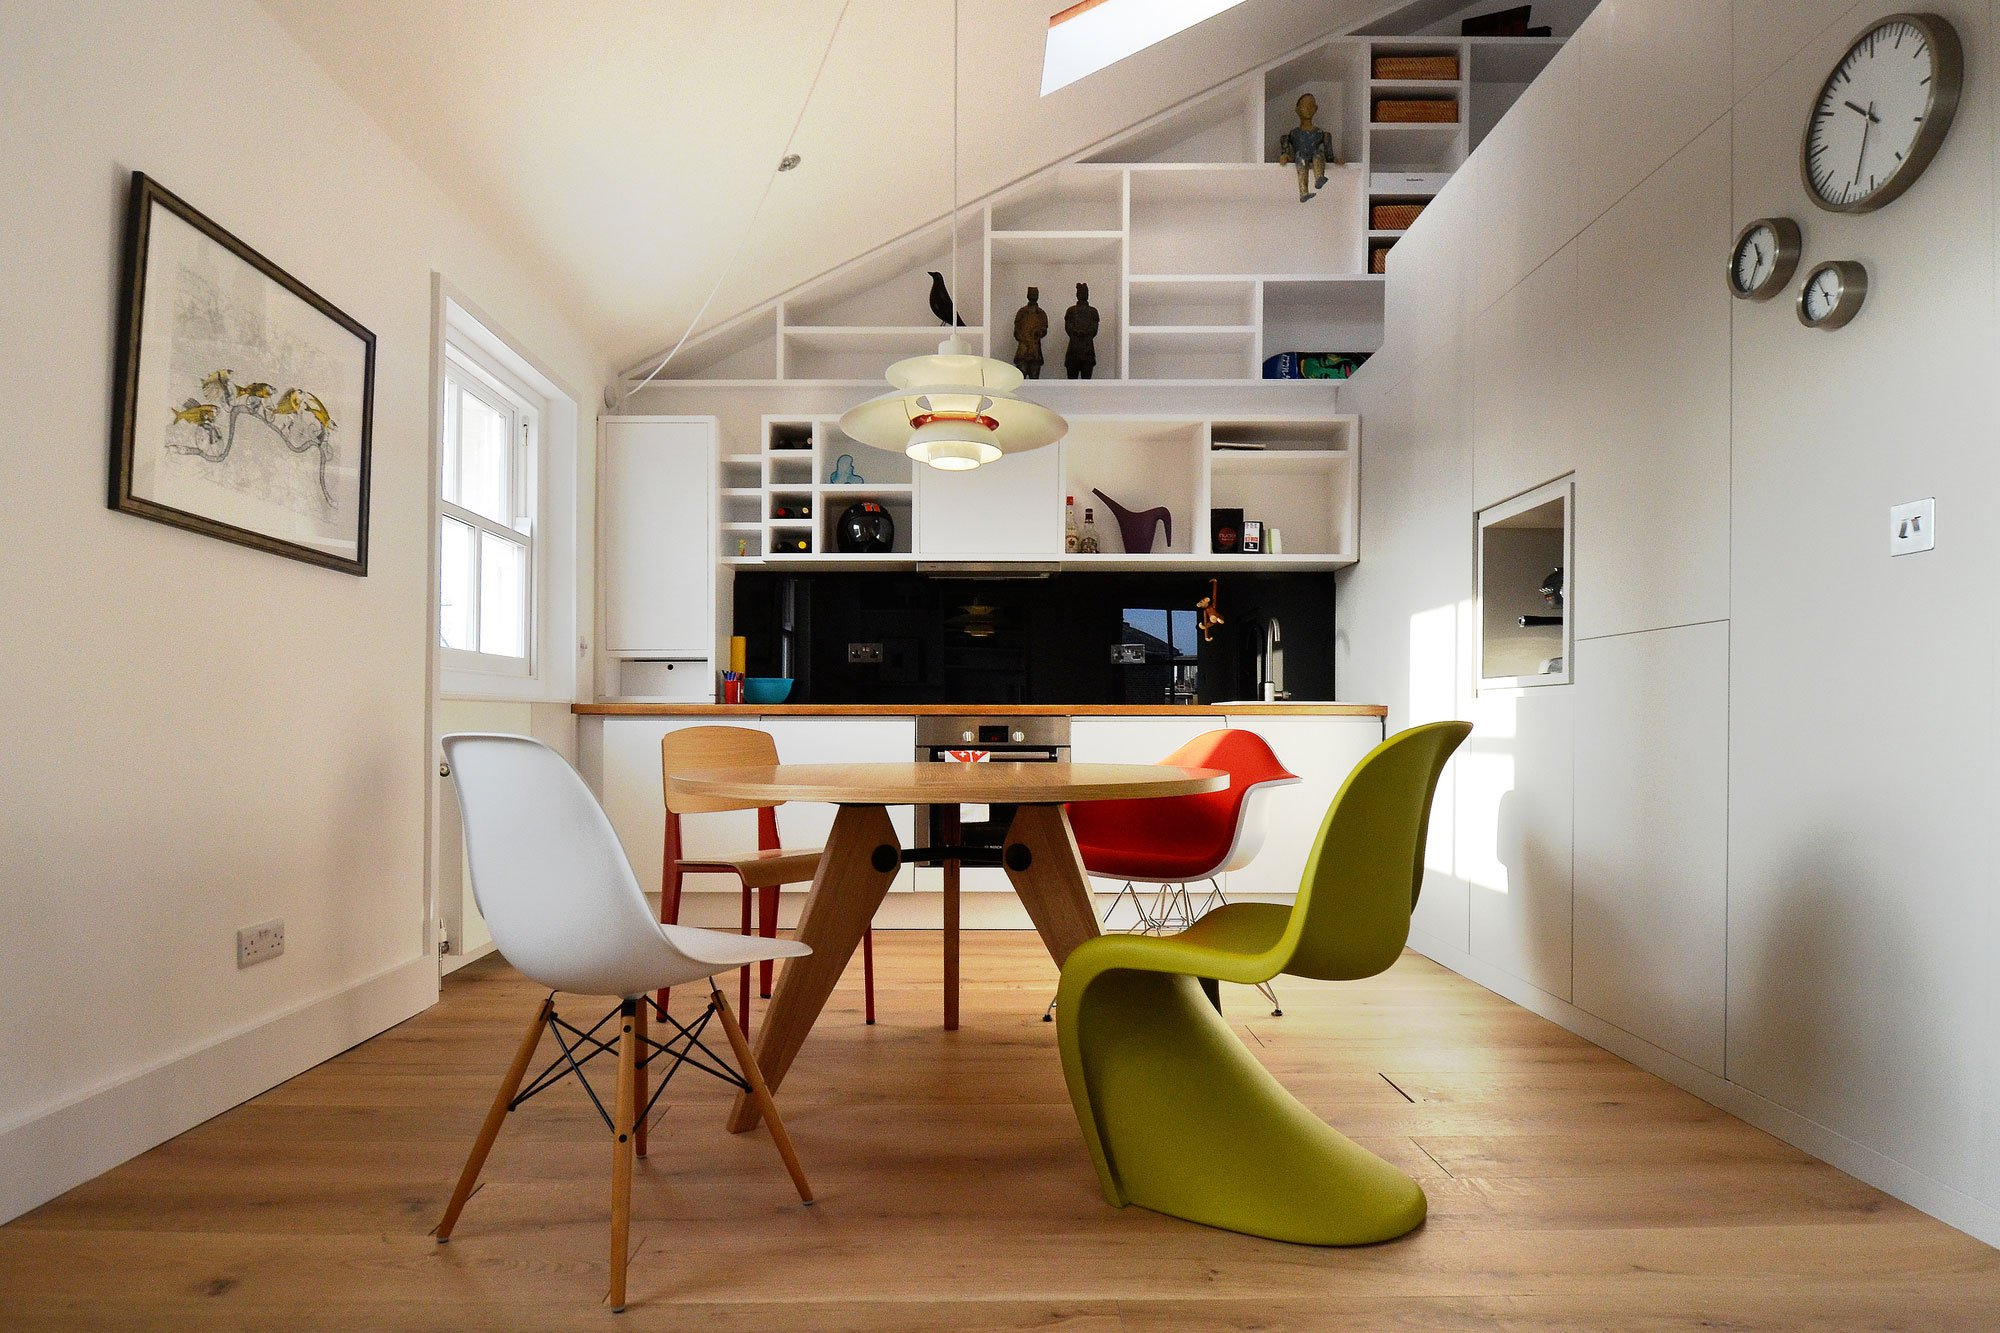 loft-space-in-camden-03